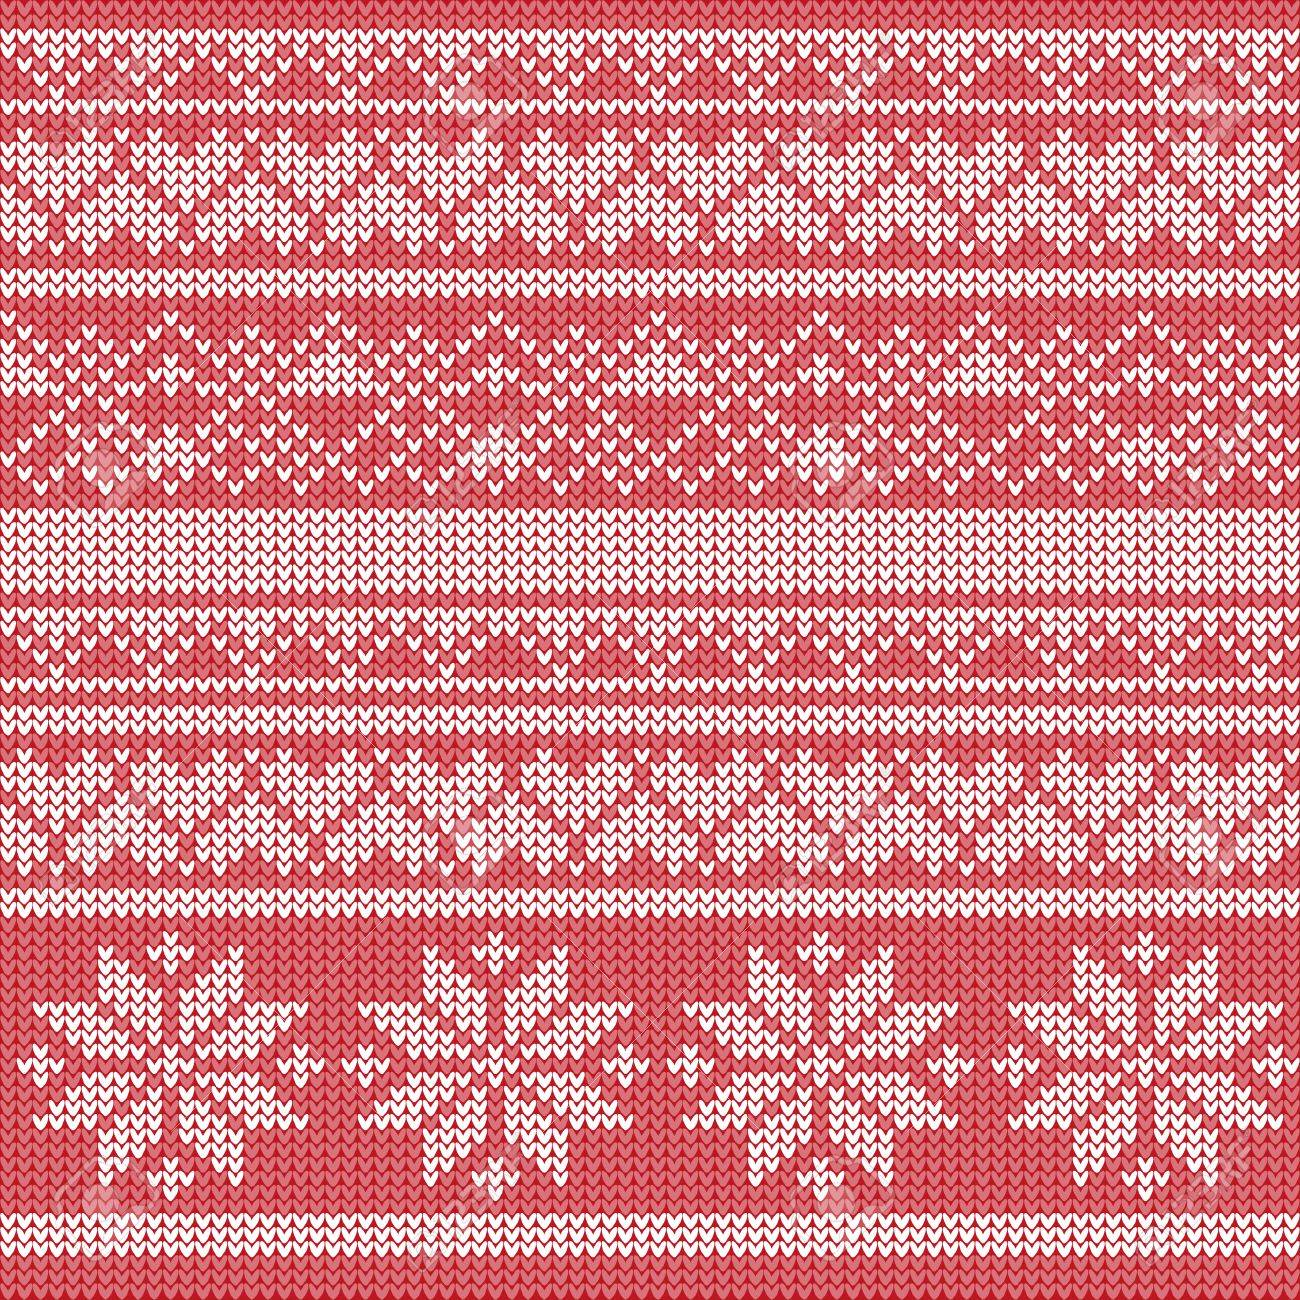 Knitted Pattern Vector. Red White Holiday Background With Snowflake ...